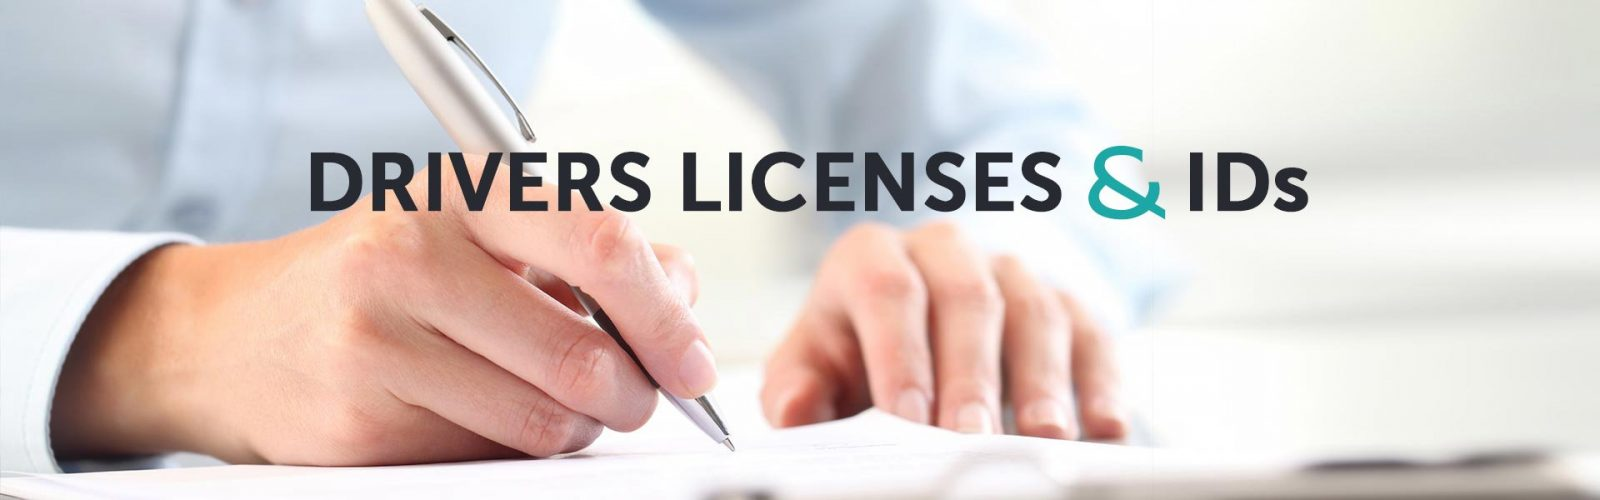 licenses-and-ids